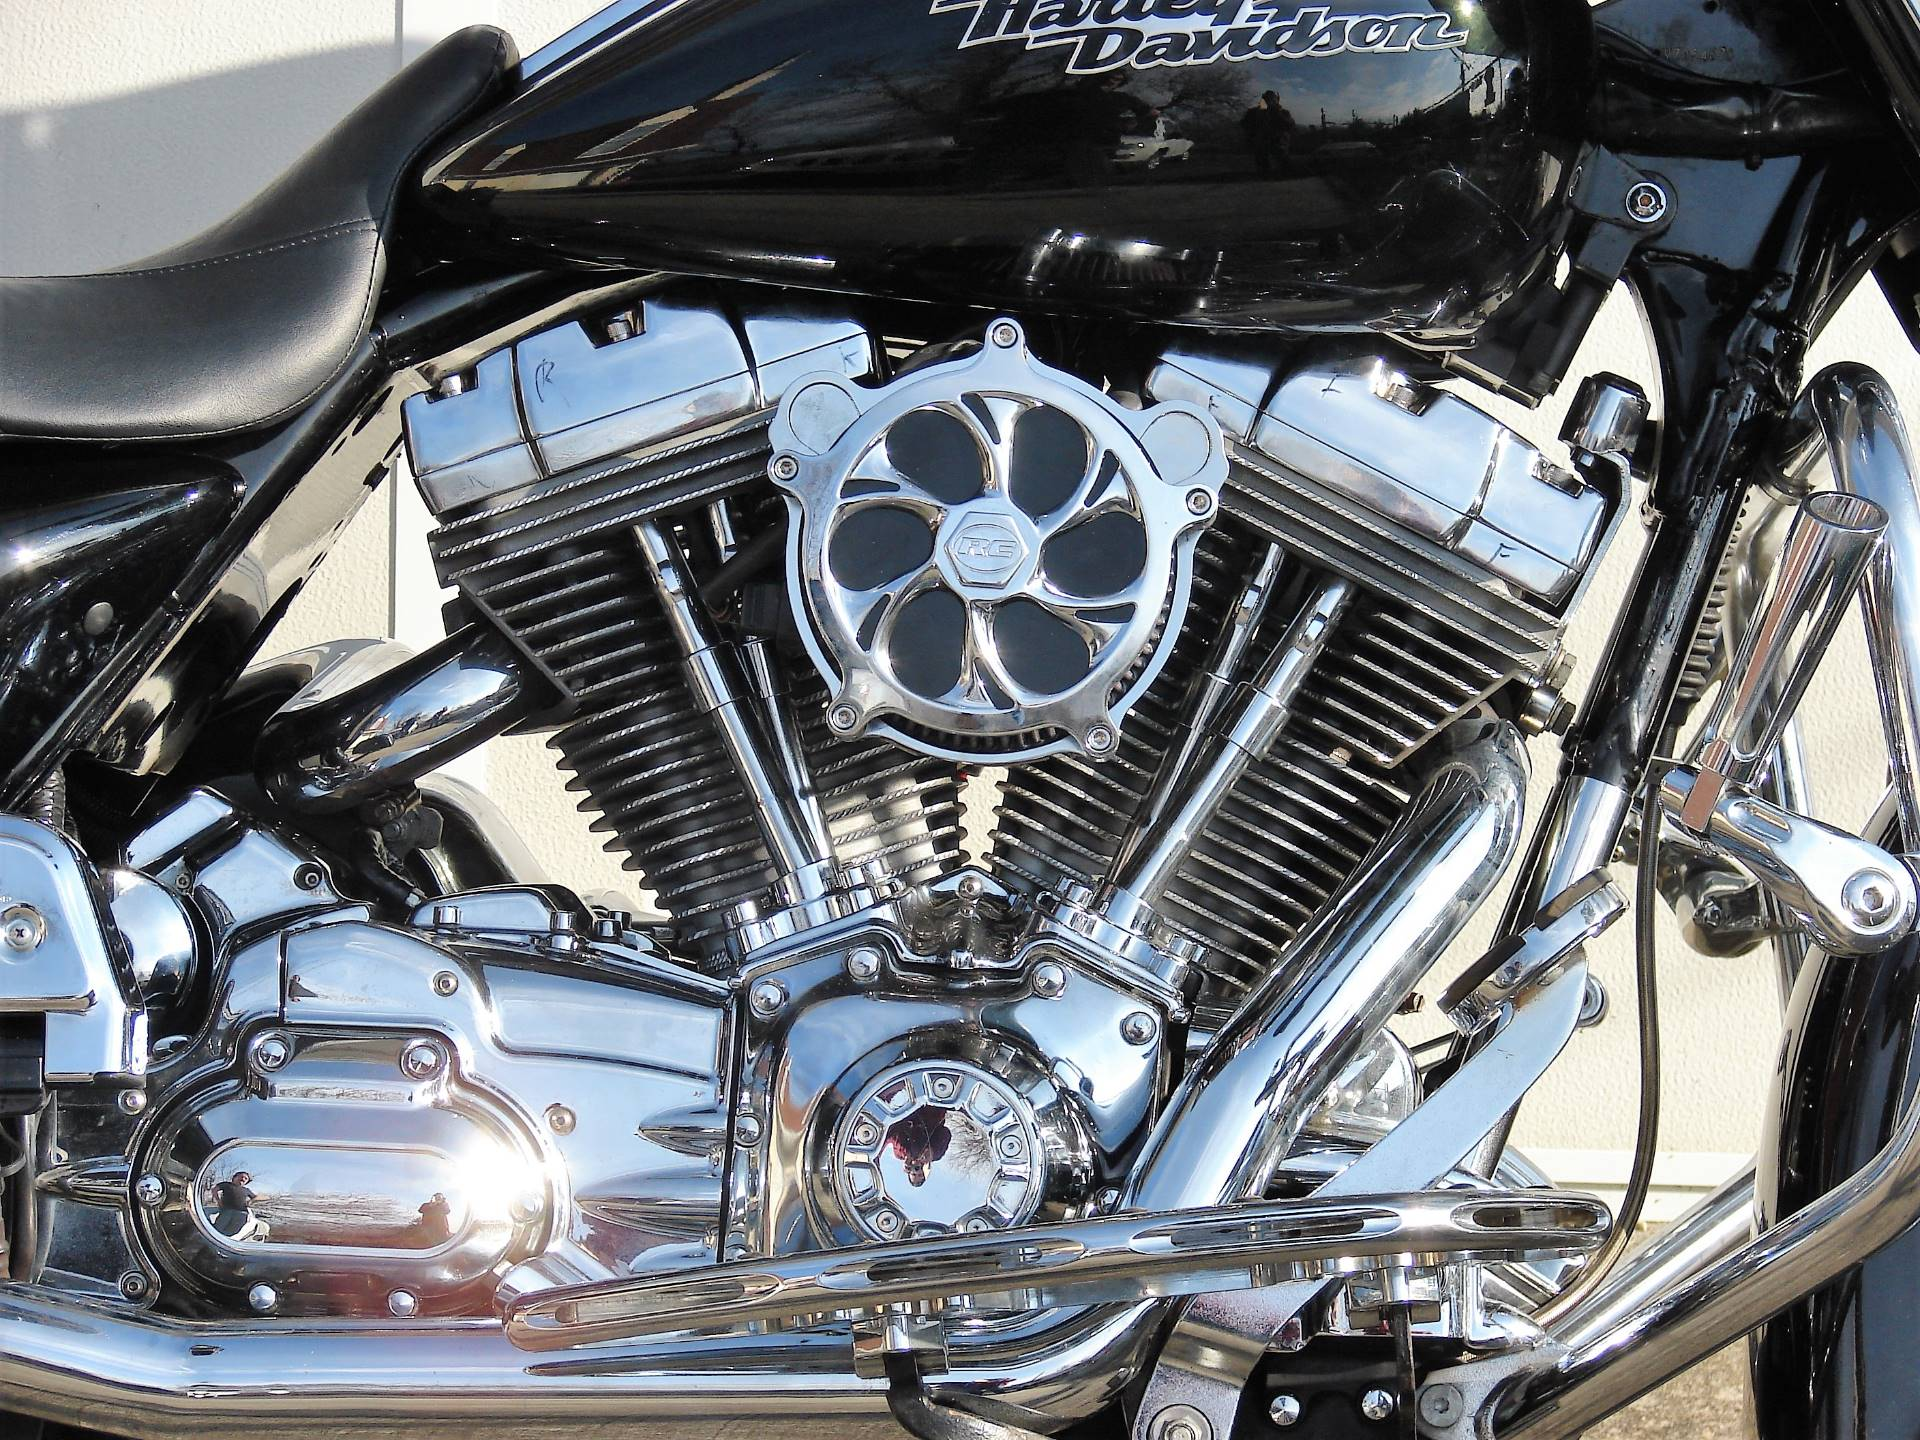 2008 Harley-Davidson FLHX Street Glide in Williamstown, New Jersey - Photo 3